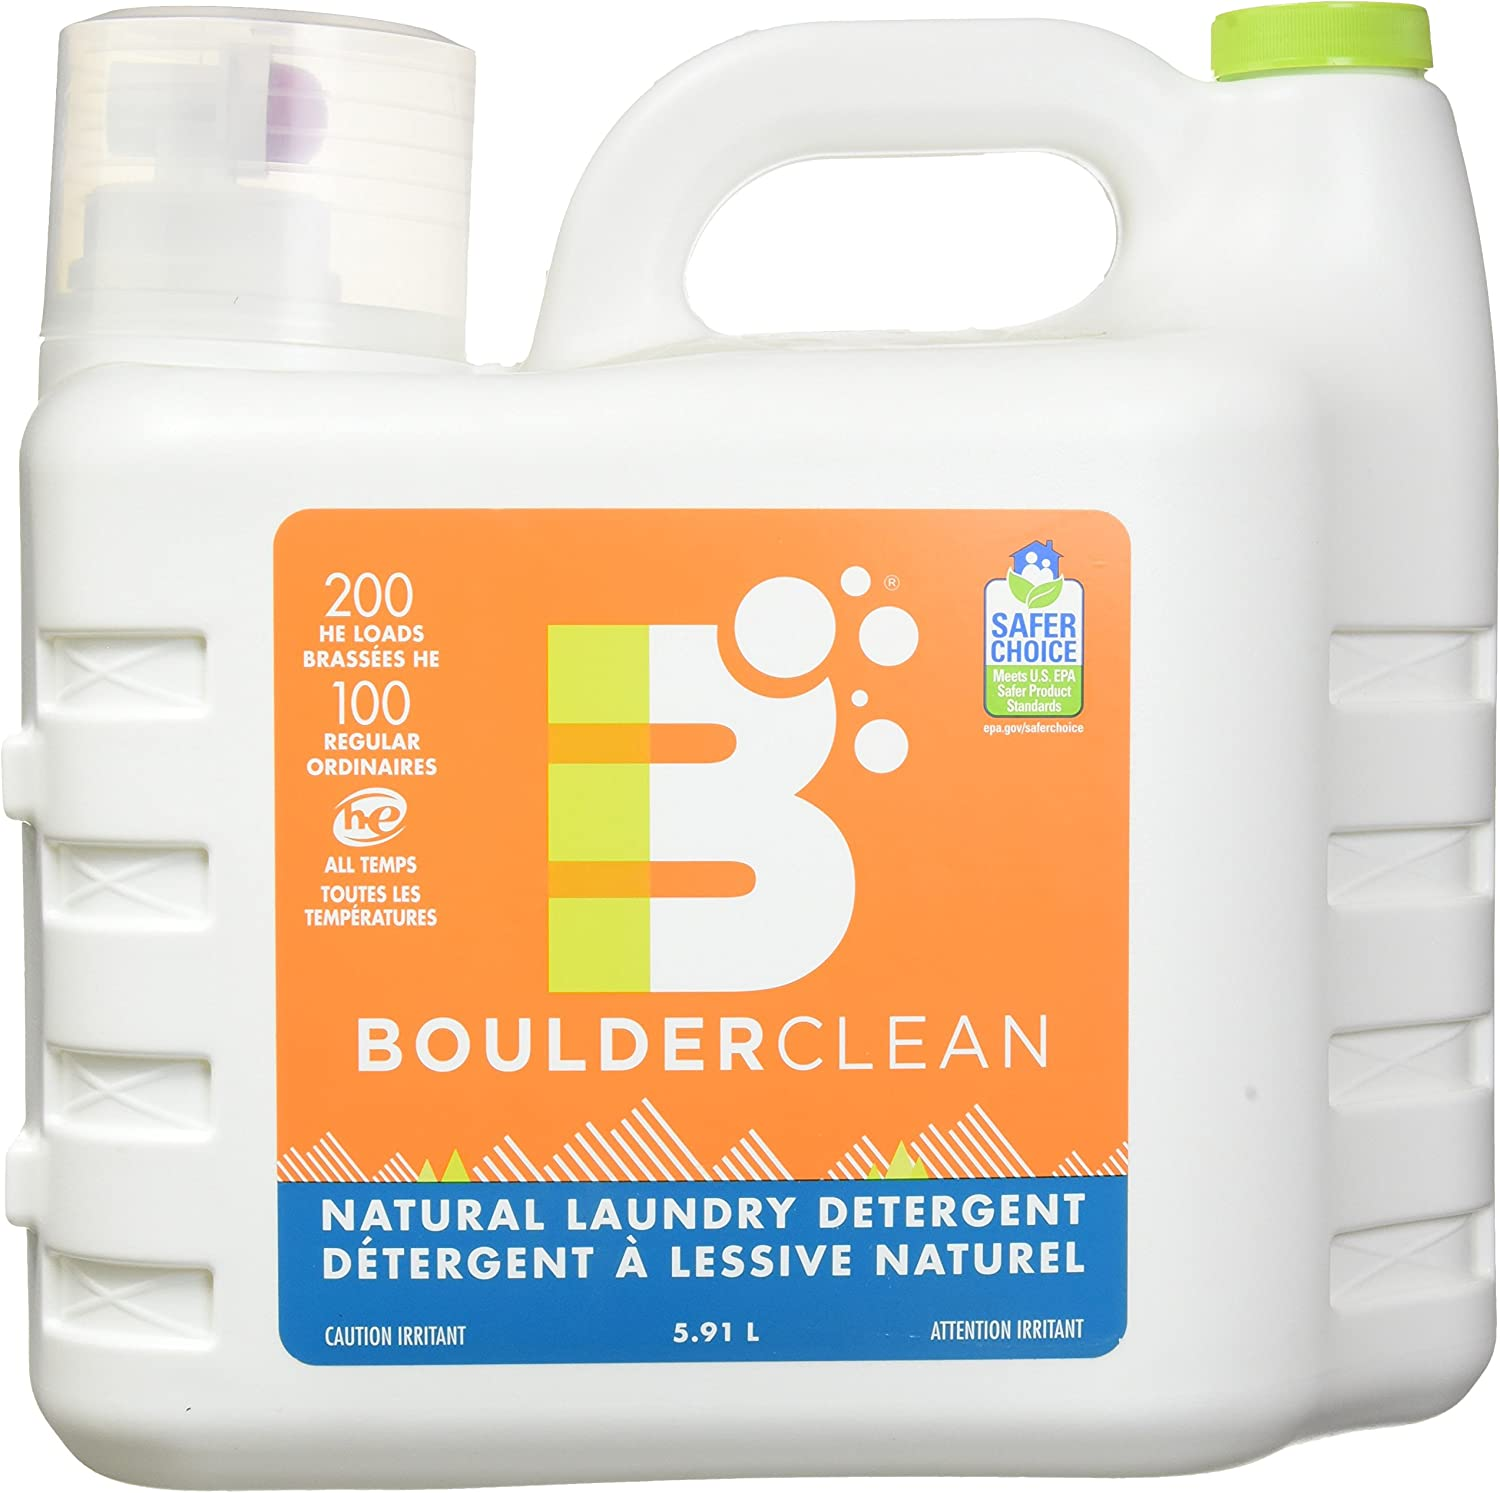 Boulder Cleaners, Laundry Detergent, 200 Fl Oz